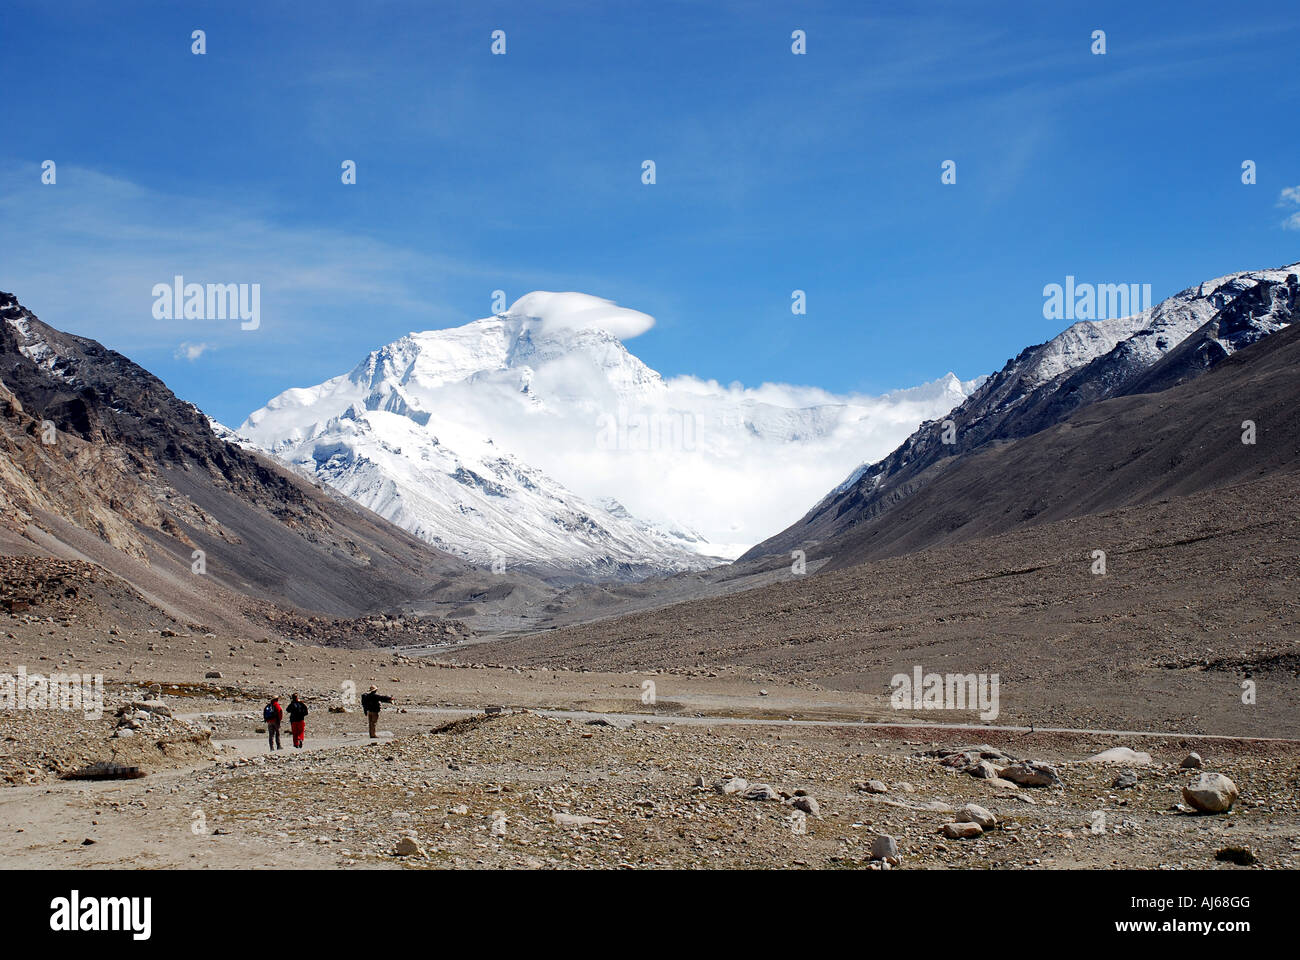 The North Face of Everest dominates the Rongbuk valley in Tibet - Stock Image